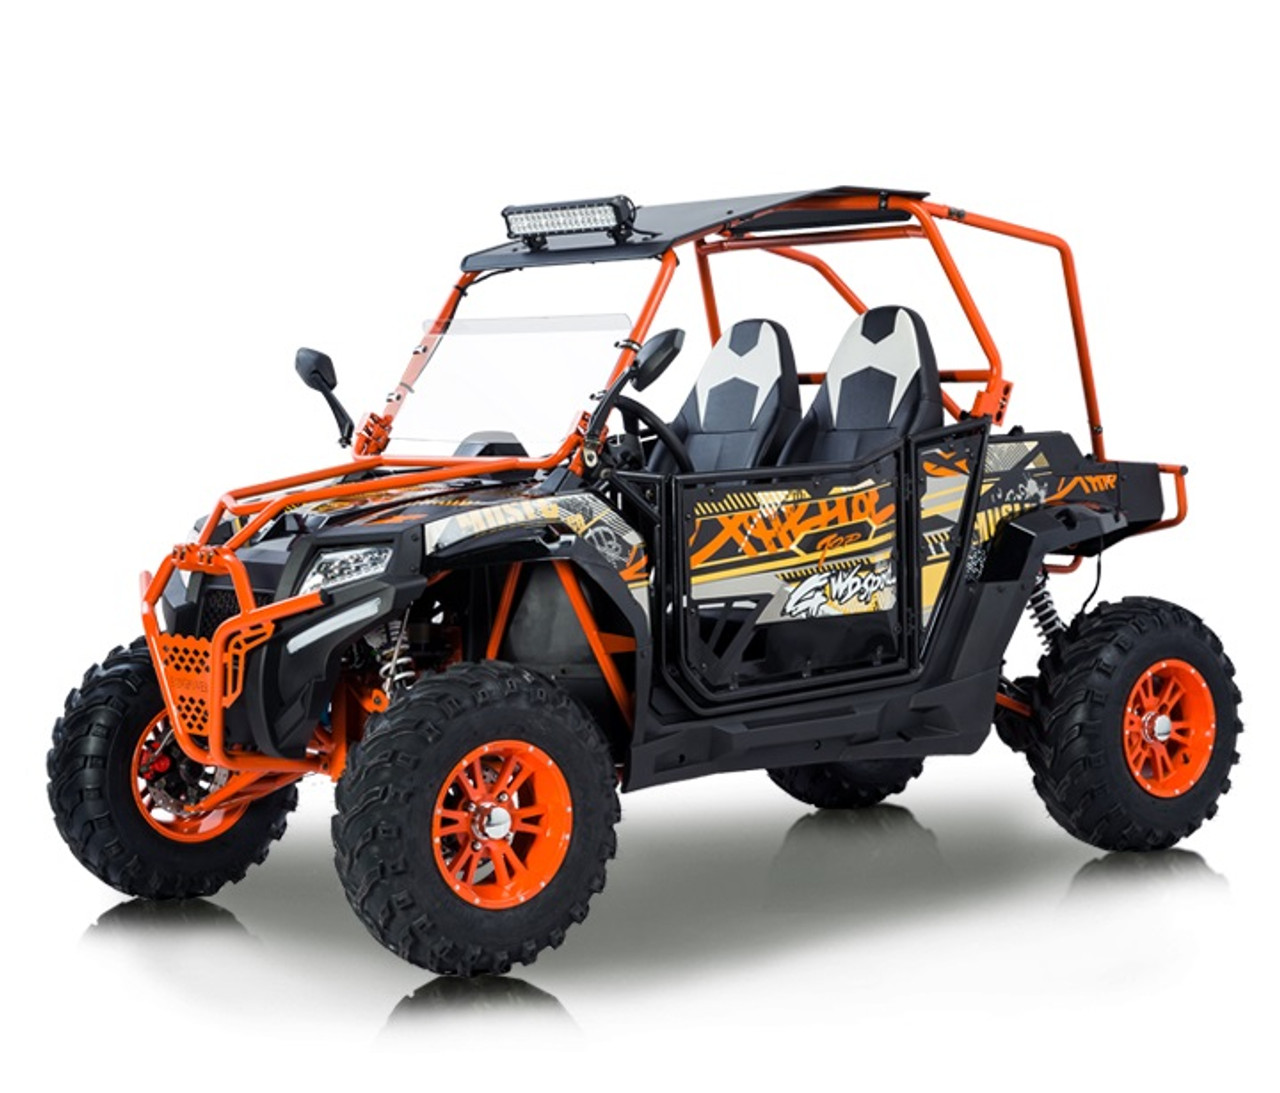 BMS Sniper T350 311cc Utility Vehicle with Automatic, Transmission, w/Reverse